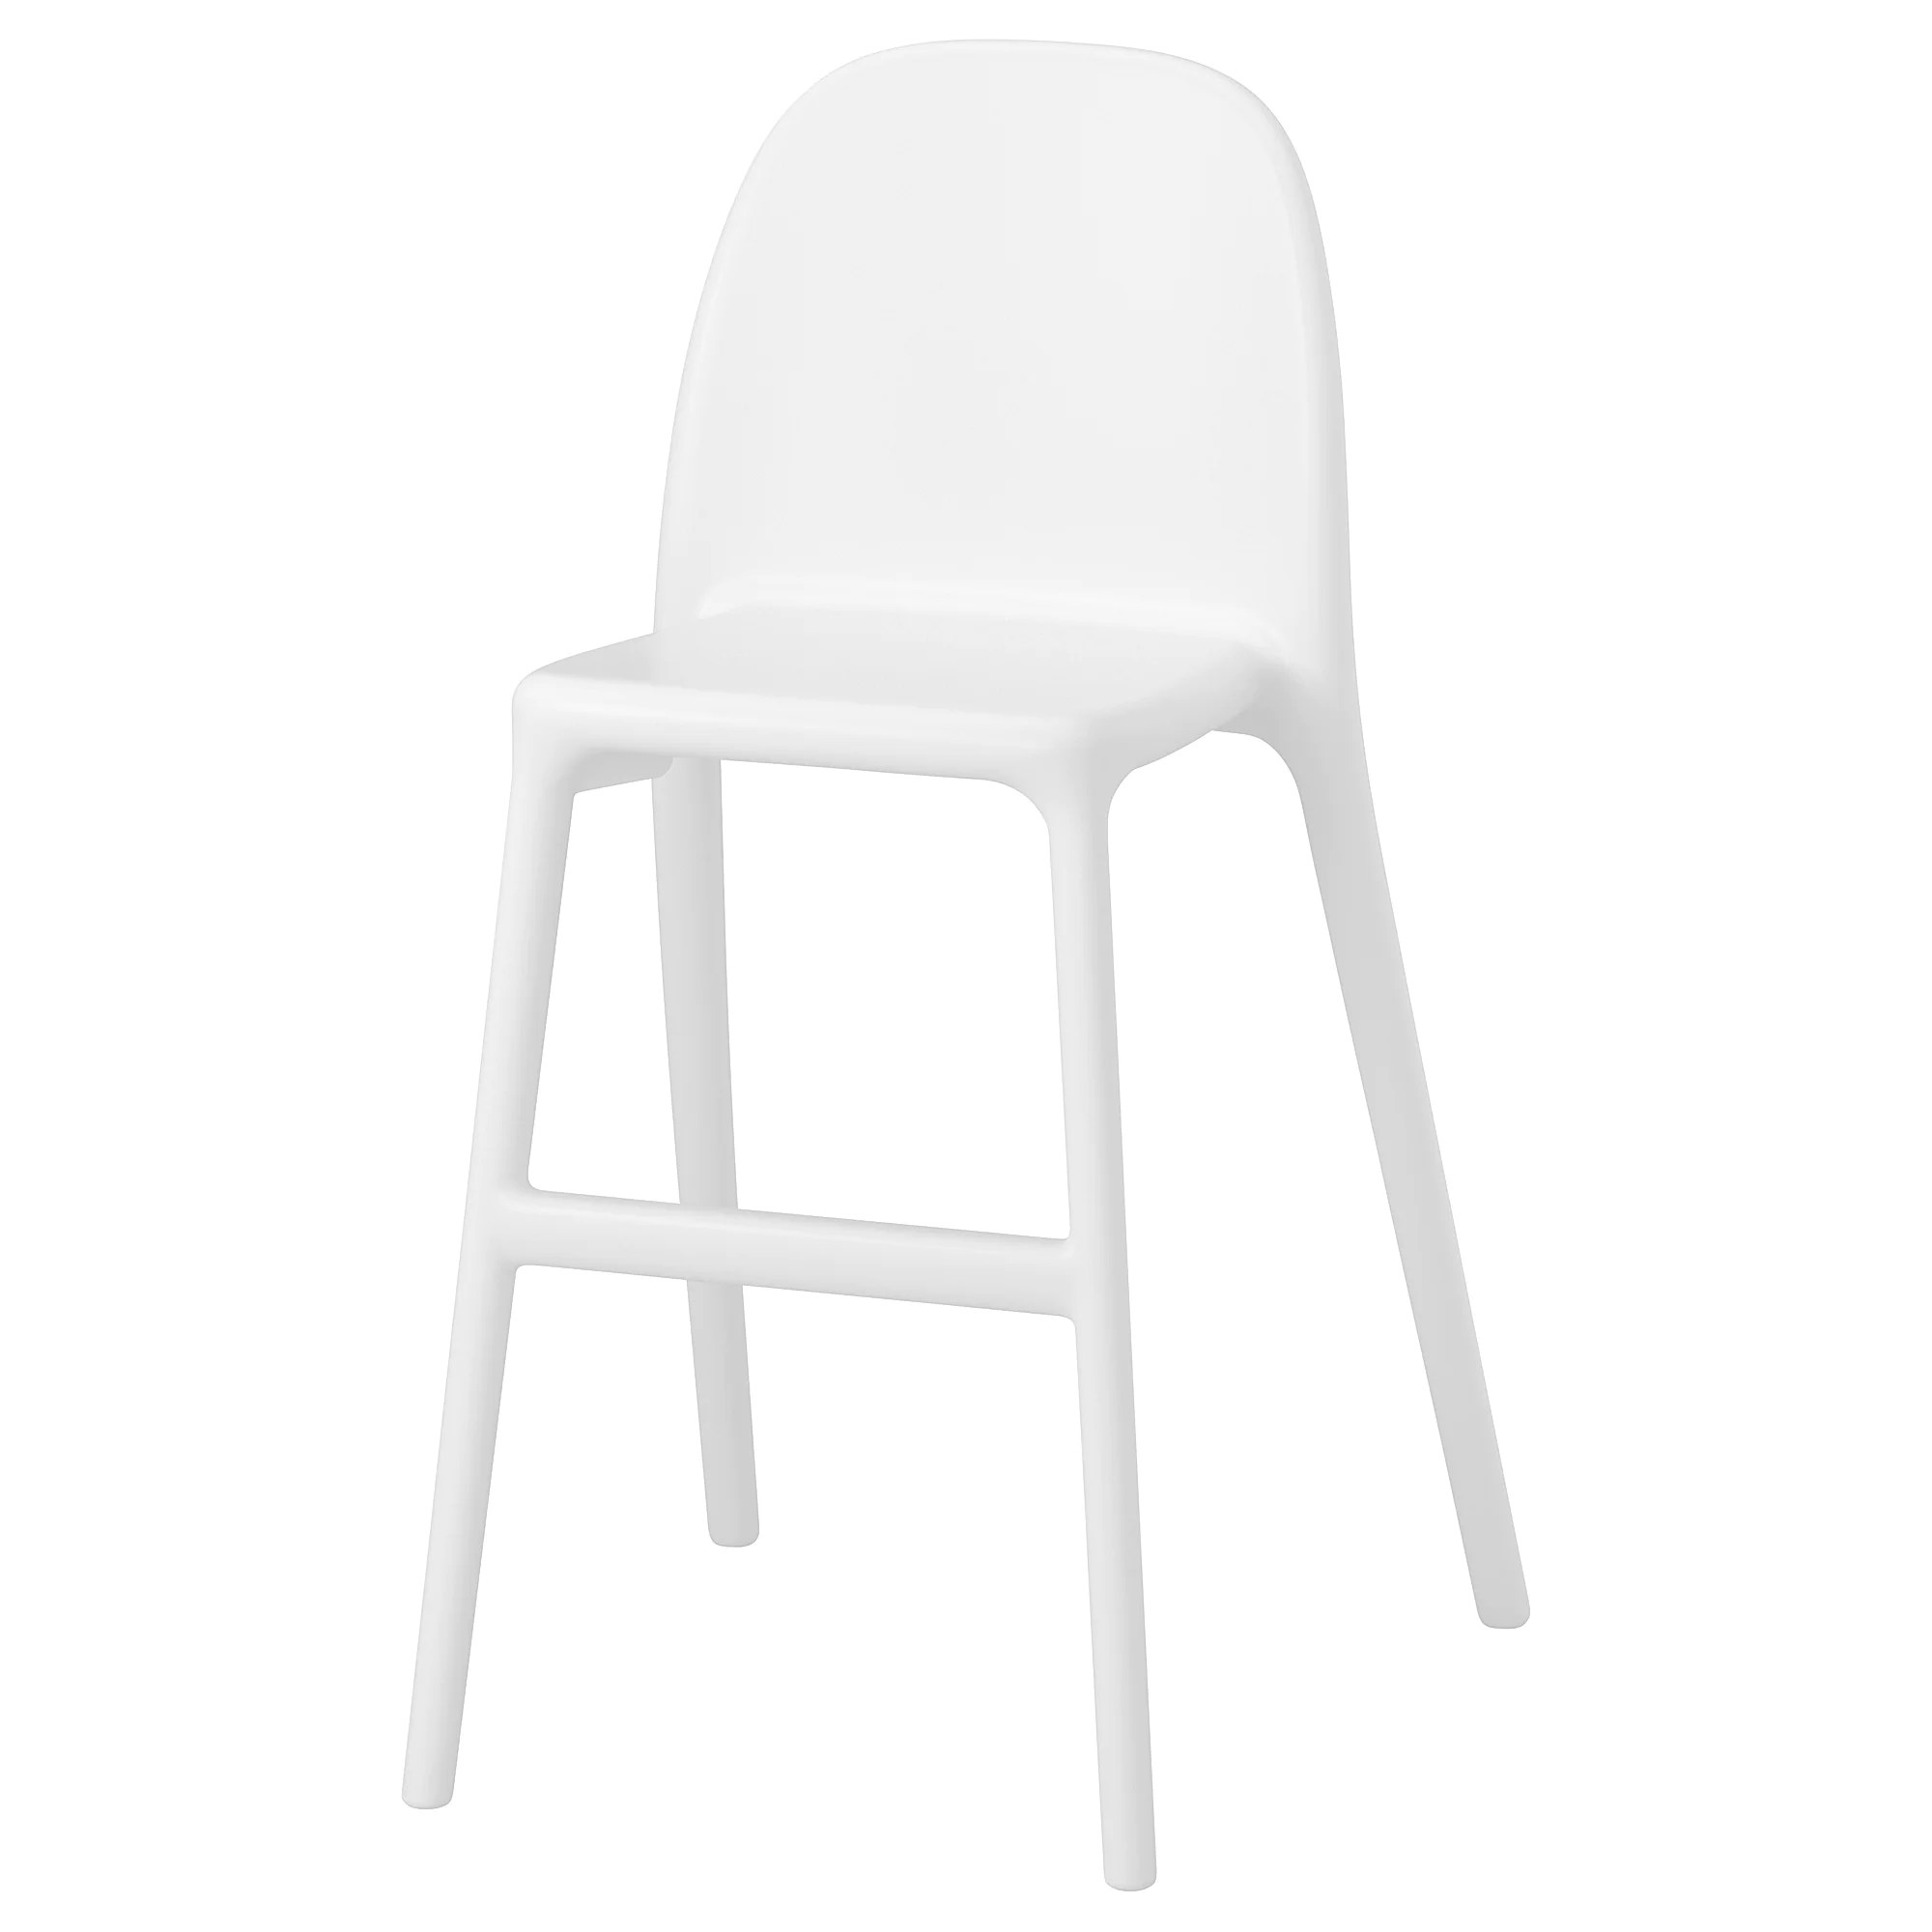 Sedia Junior Ikea Junior Chair Urban White